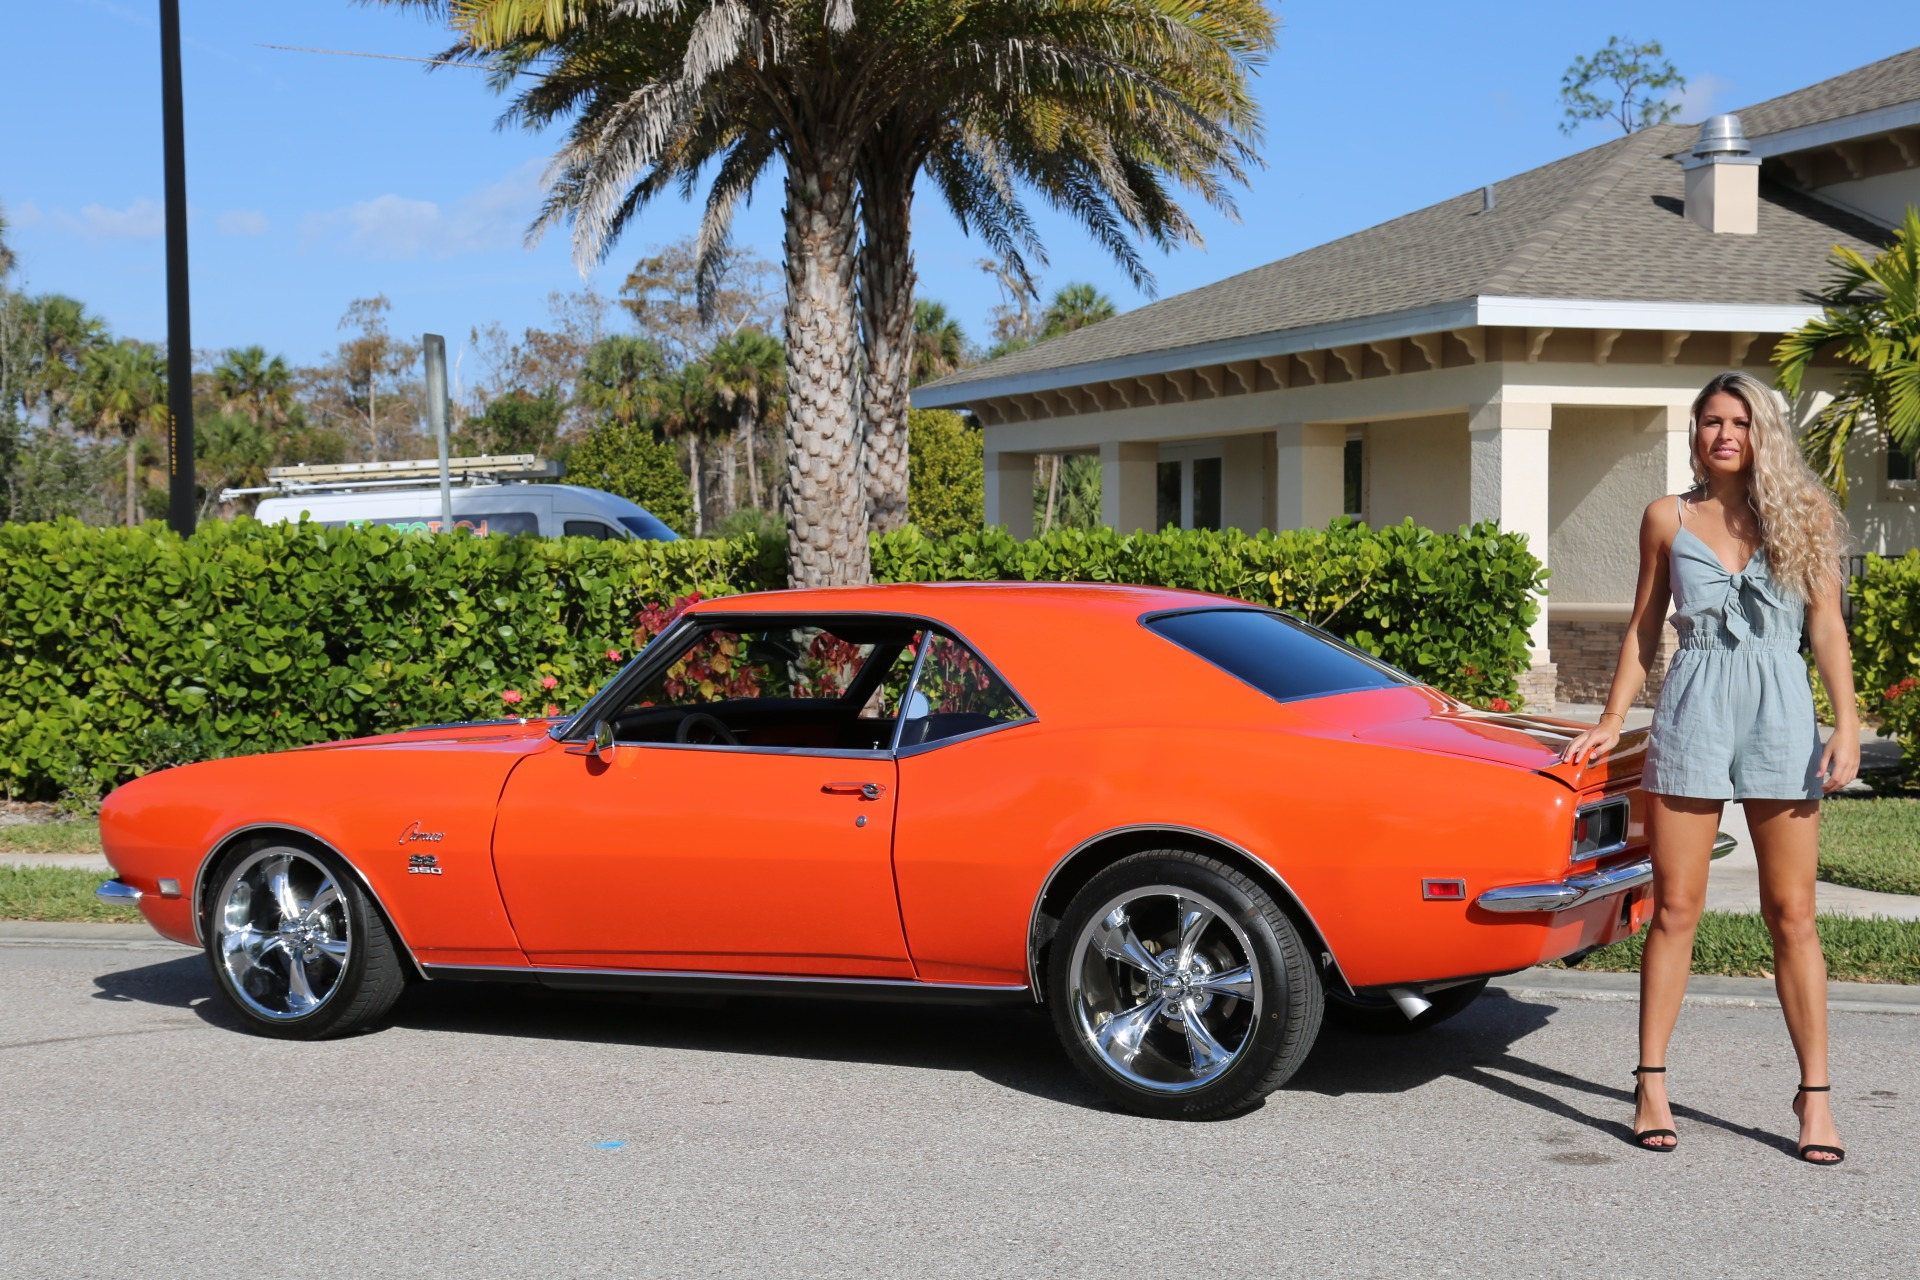 Used 1968 Chevy Camaro V8 4 Speed Manual for sale $31,000 at Muscle Cars for Sale Inc. in Fort Myers FL 33912 4